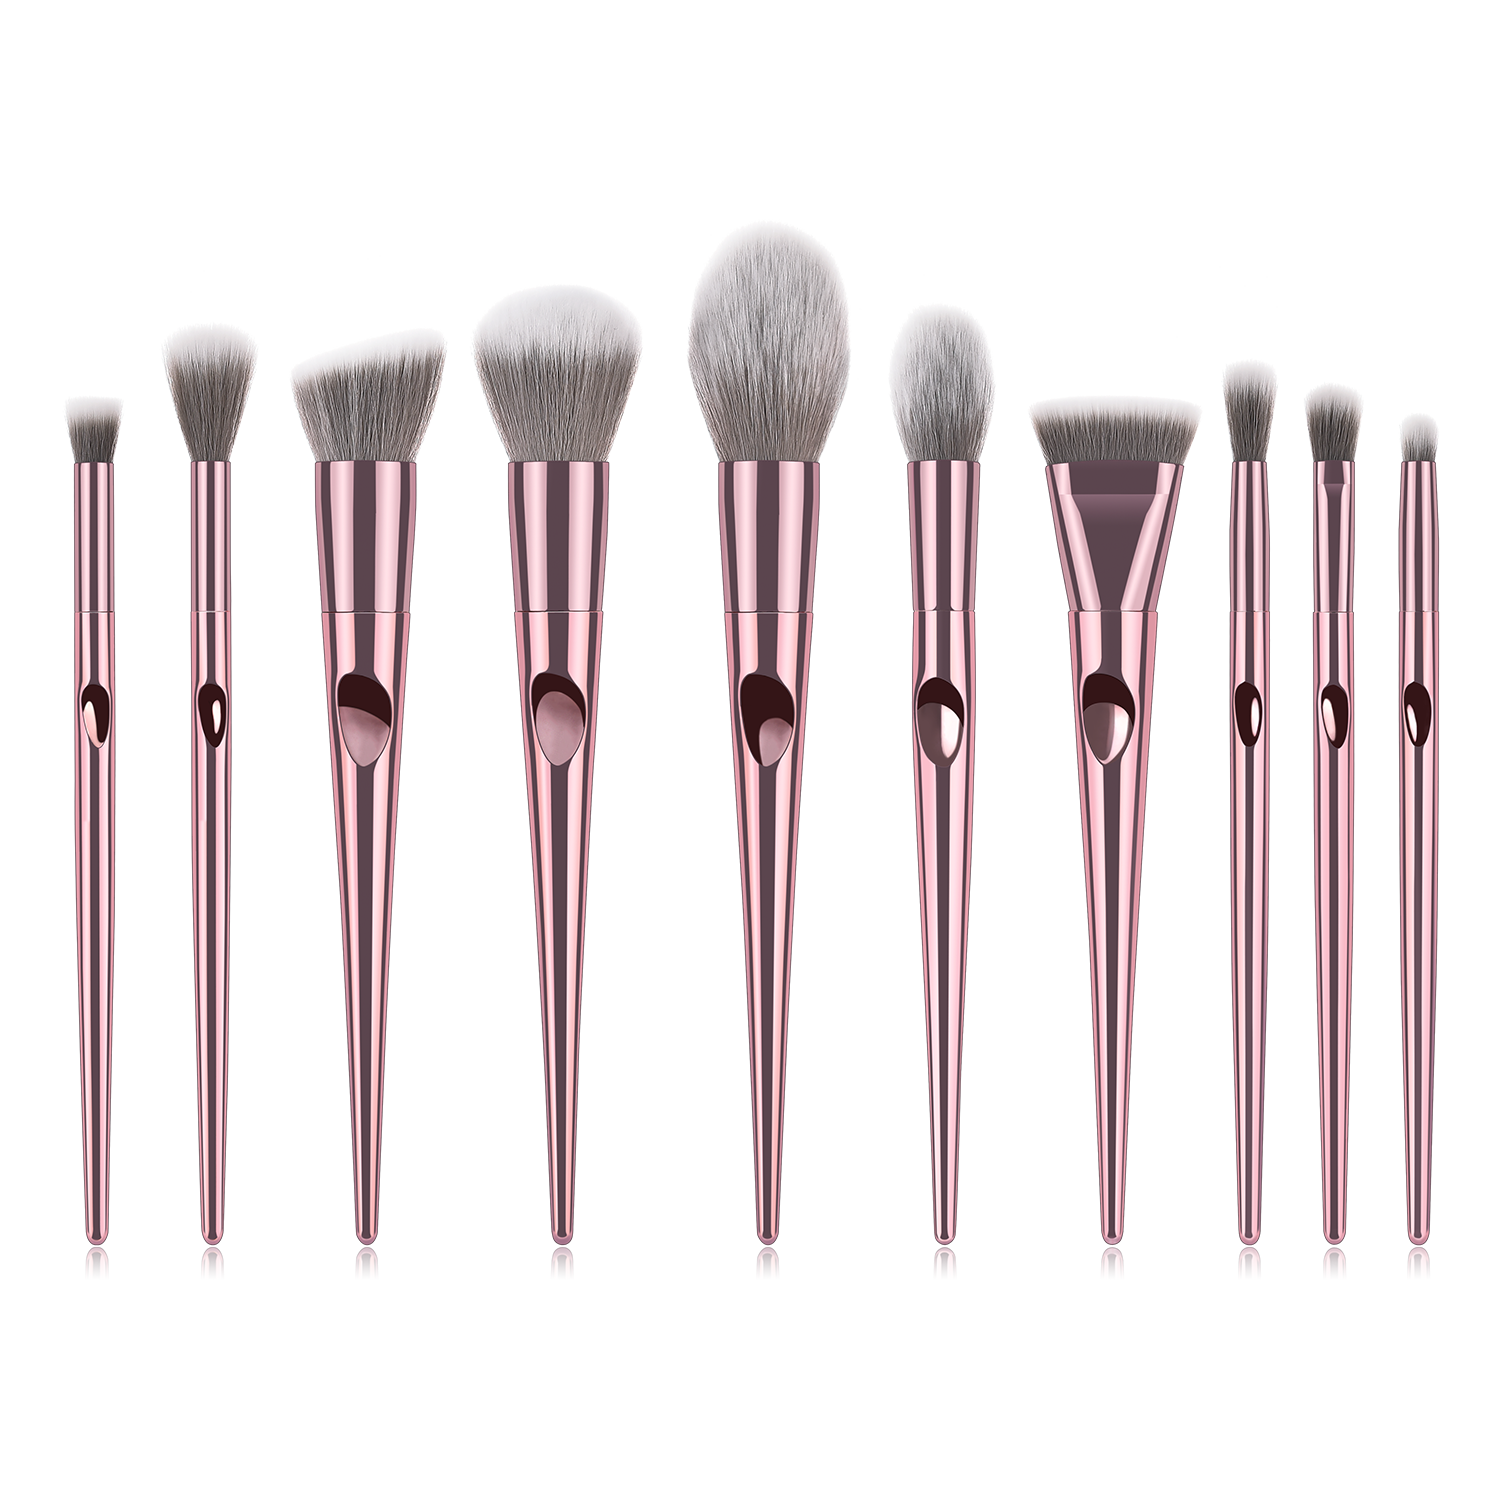 new high quality your logo father finger rose gold makeup brush set 10pcs